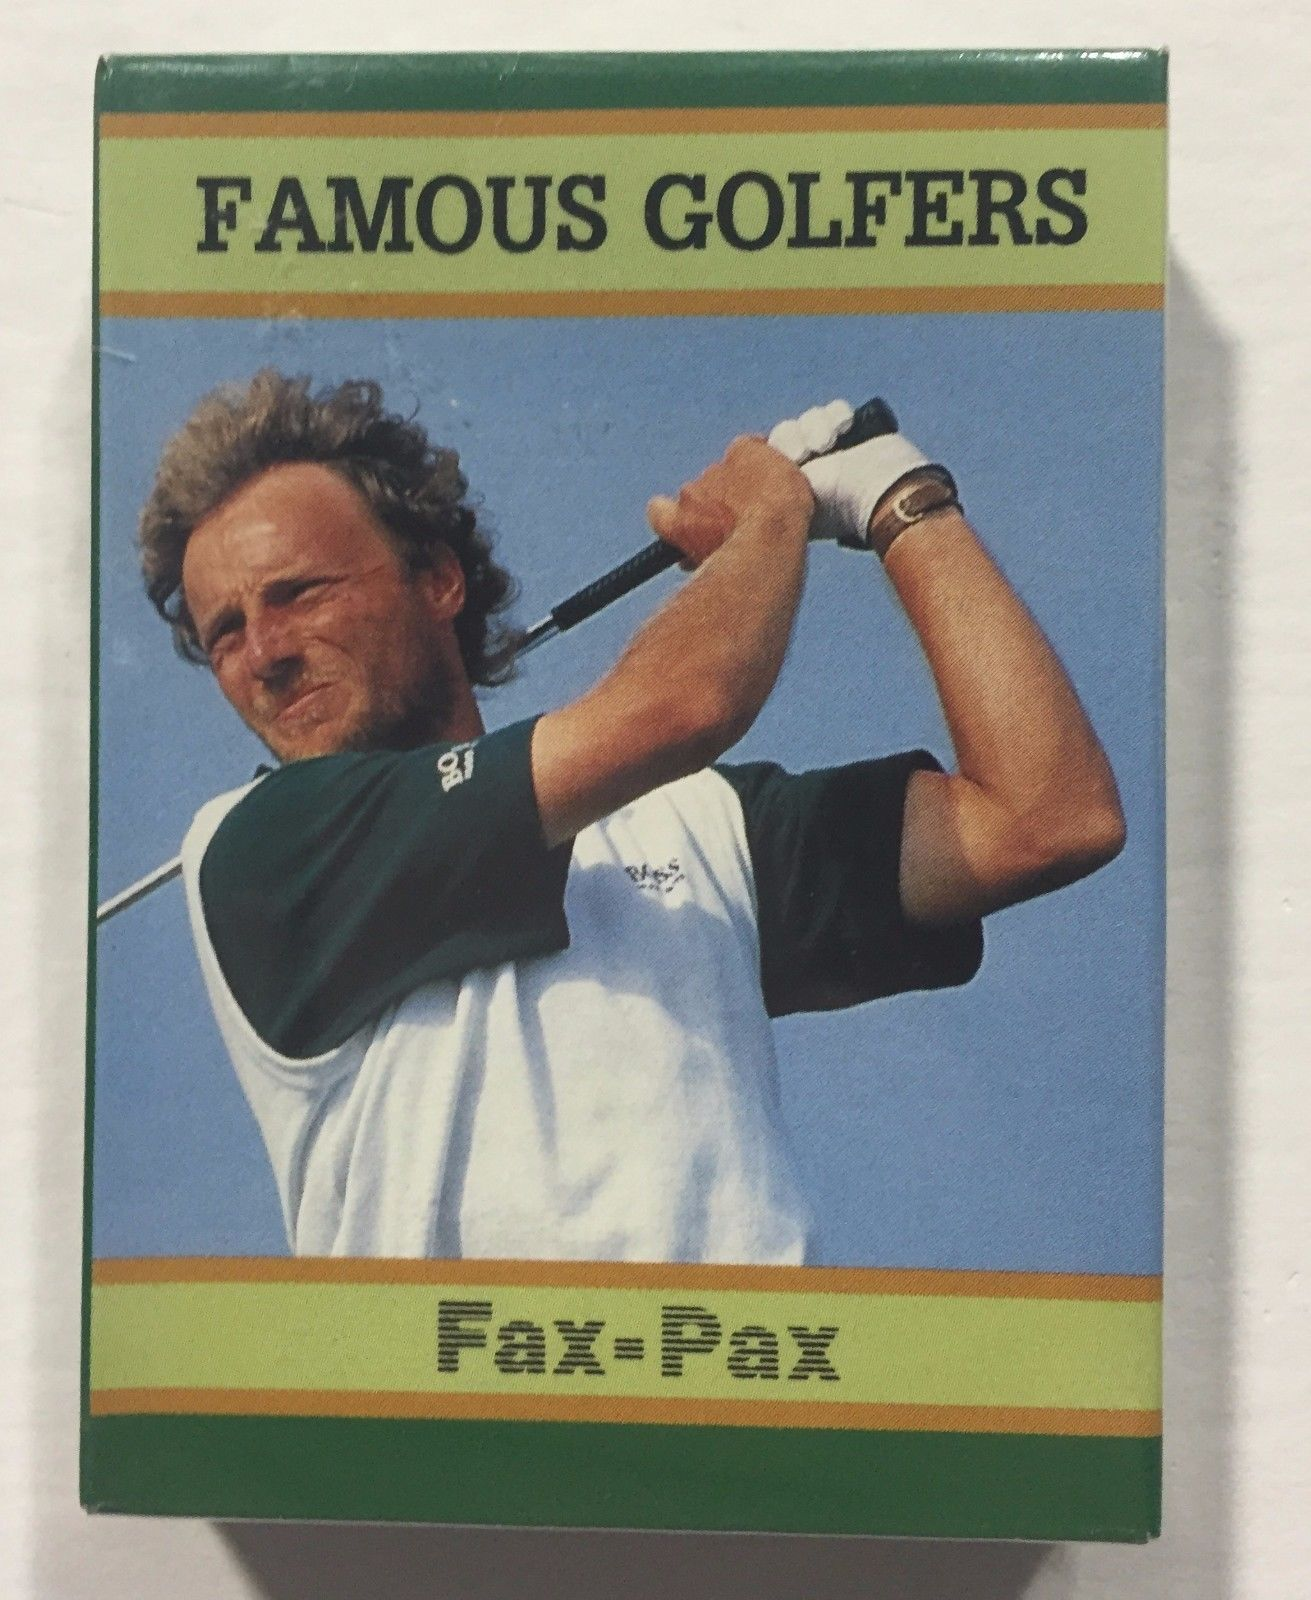 1993 Famous Golfers Fax Pax Factory Sealed 40 Card golf Set Nicklaus Palmer Mint